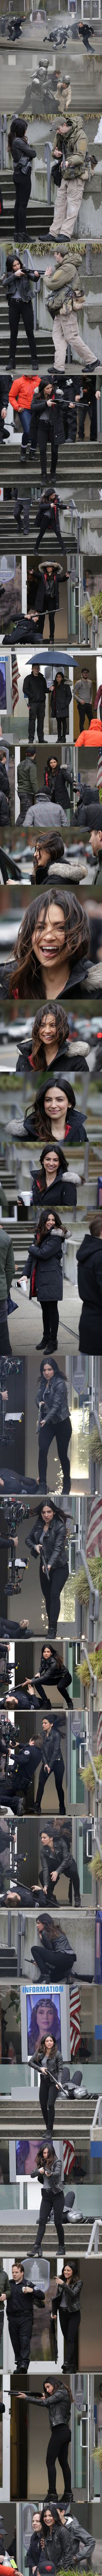 Floriana Lima (Maggie Sawyer) filming for Supergirl 2x21 in Vancouver